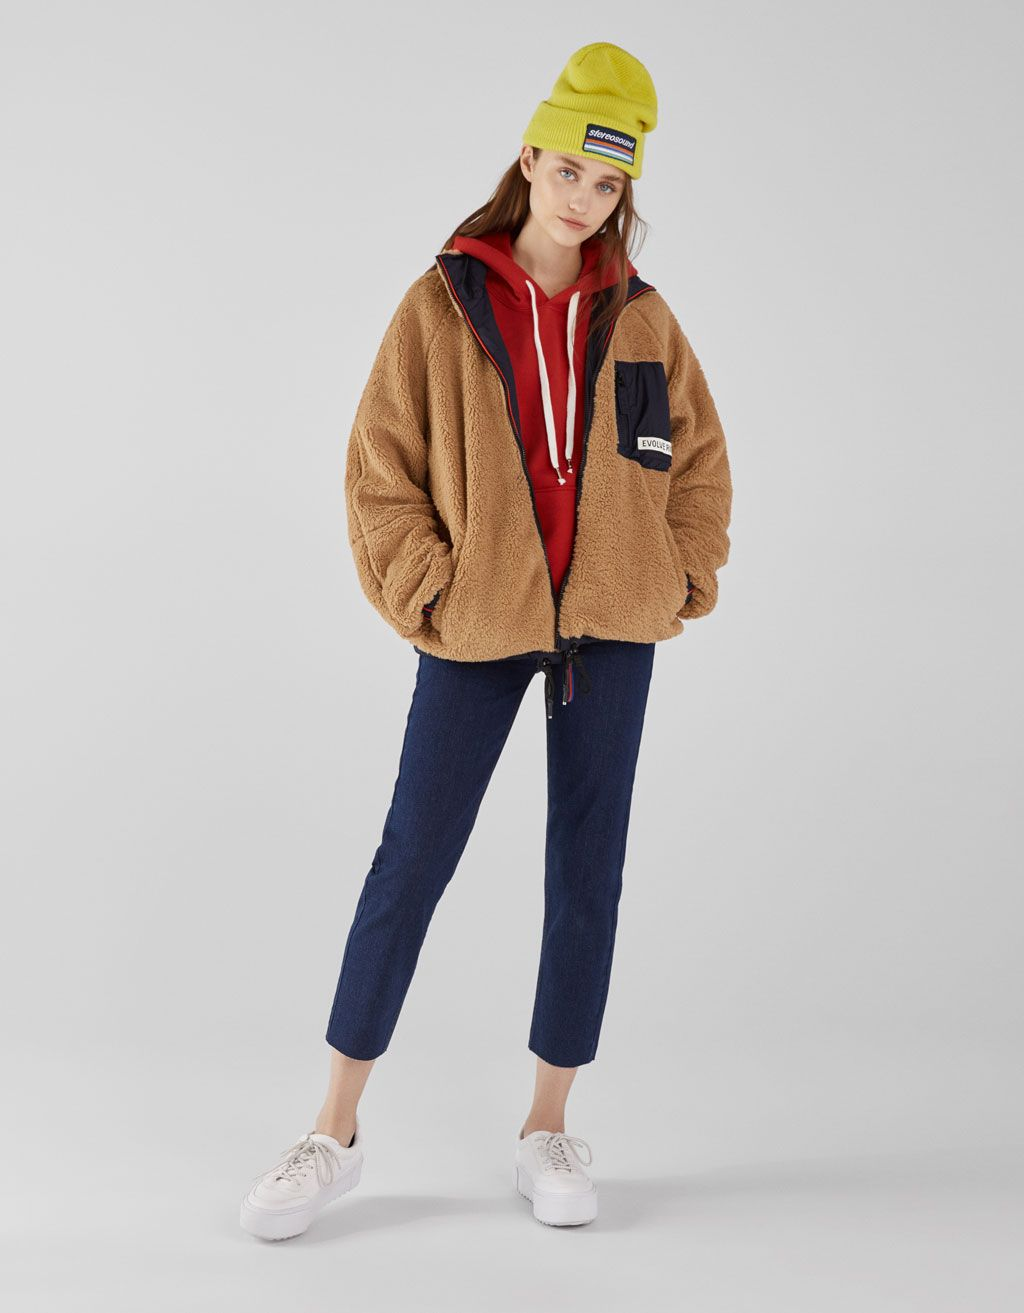 a7877ffae6f Reversible faux shearling and nylon jacket. Discover this and many more  items in Bershka with